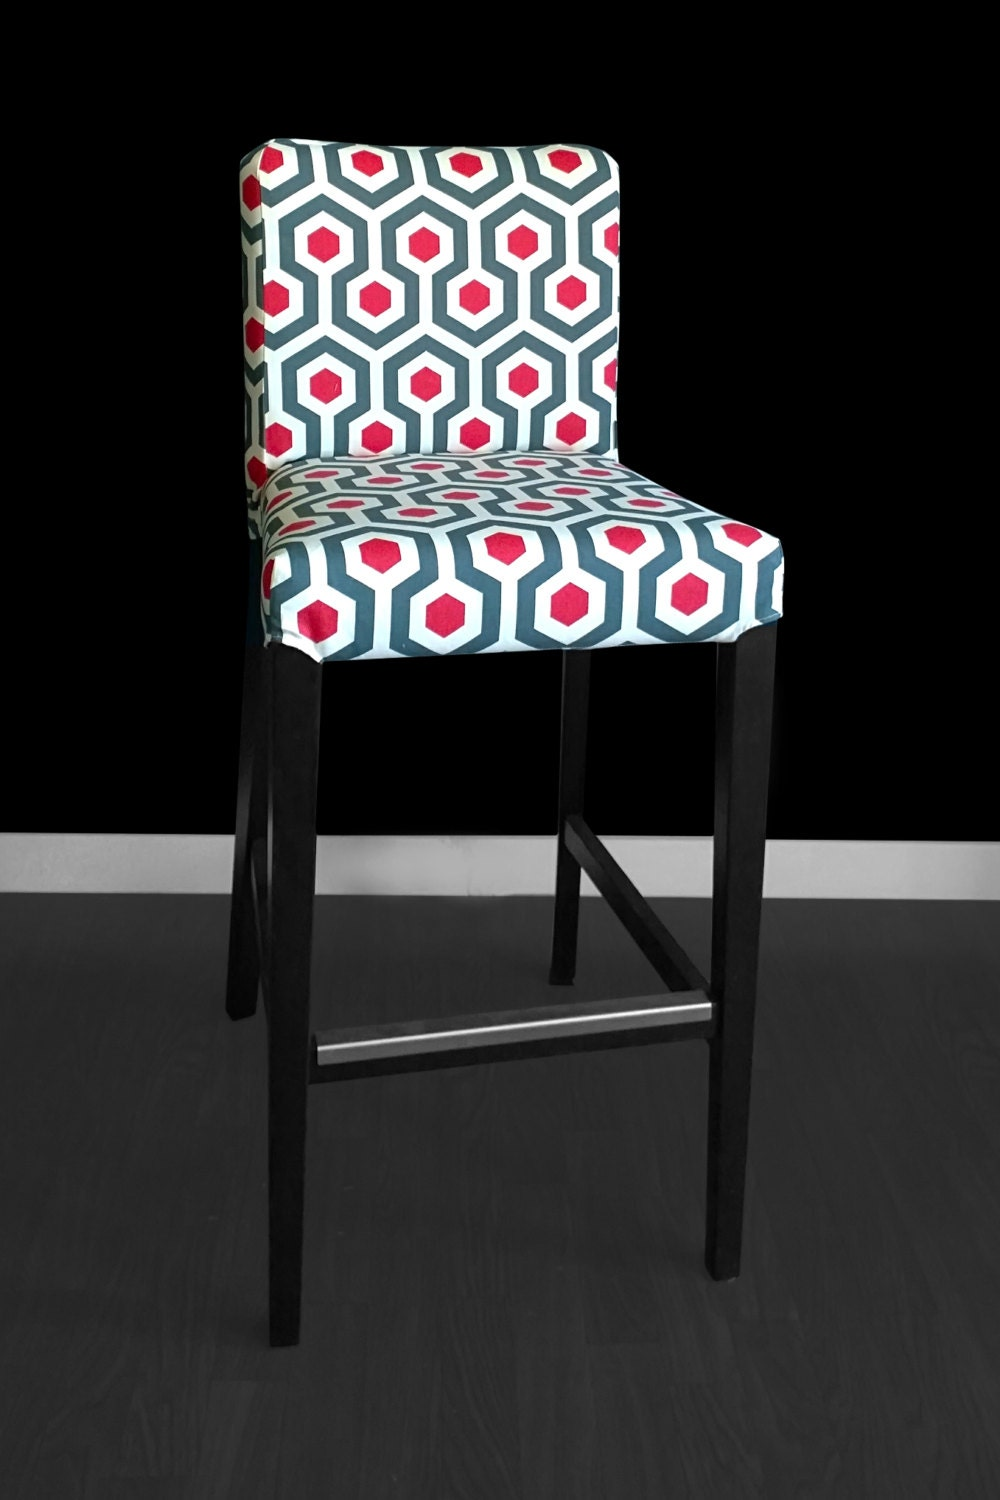 Geometric Hexagon Ikea Henriksdal Bar Stool Chair Cover